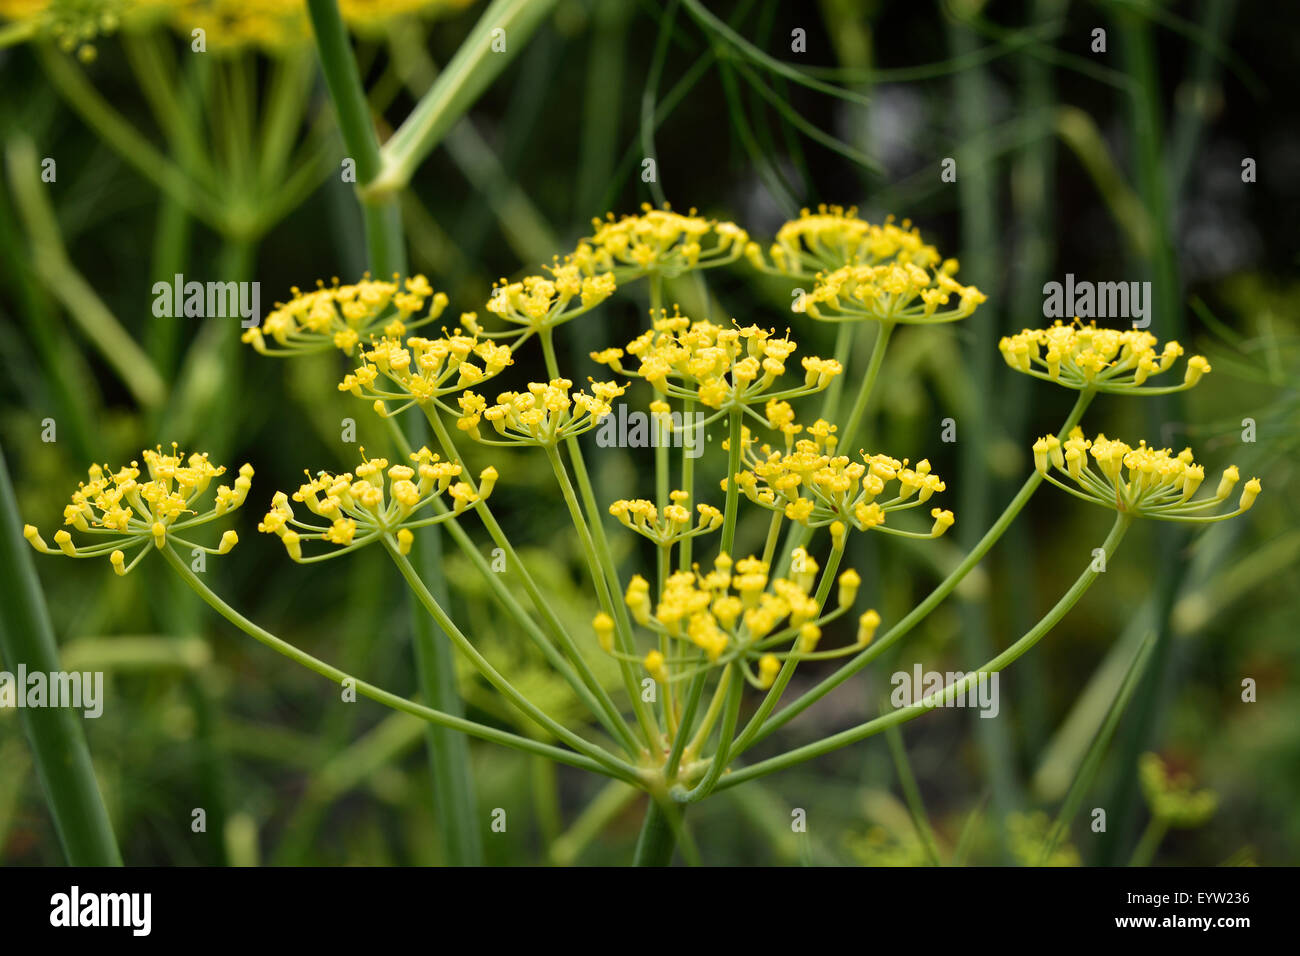 Close up of flowering Fennel (Foeniculum vulgare). Highly aromatic and flavourful herb. - Stock Image